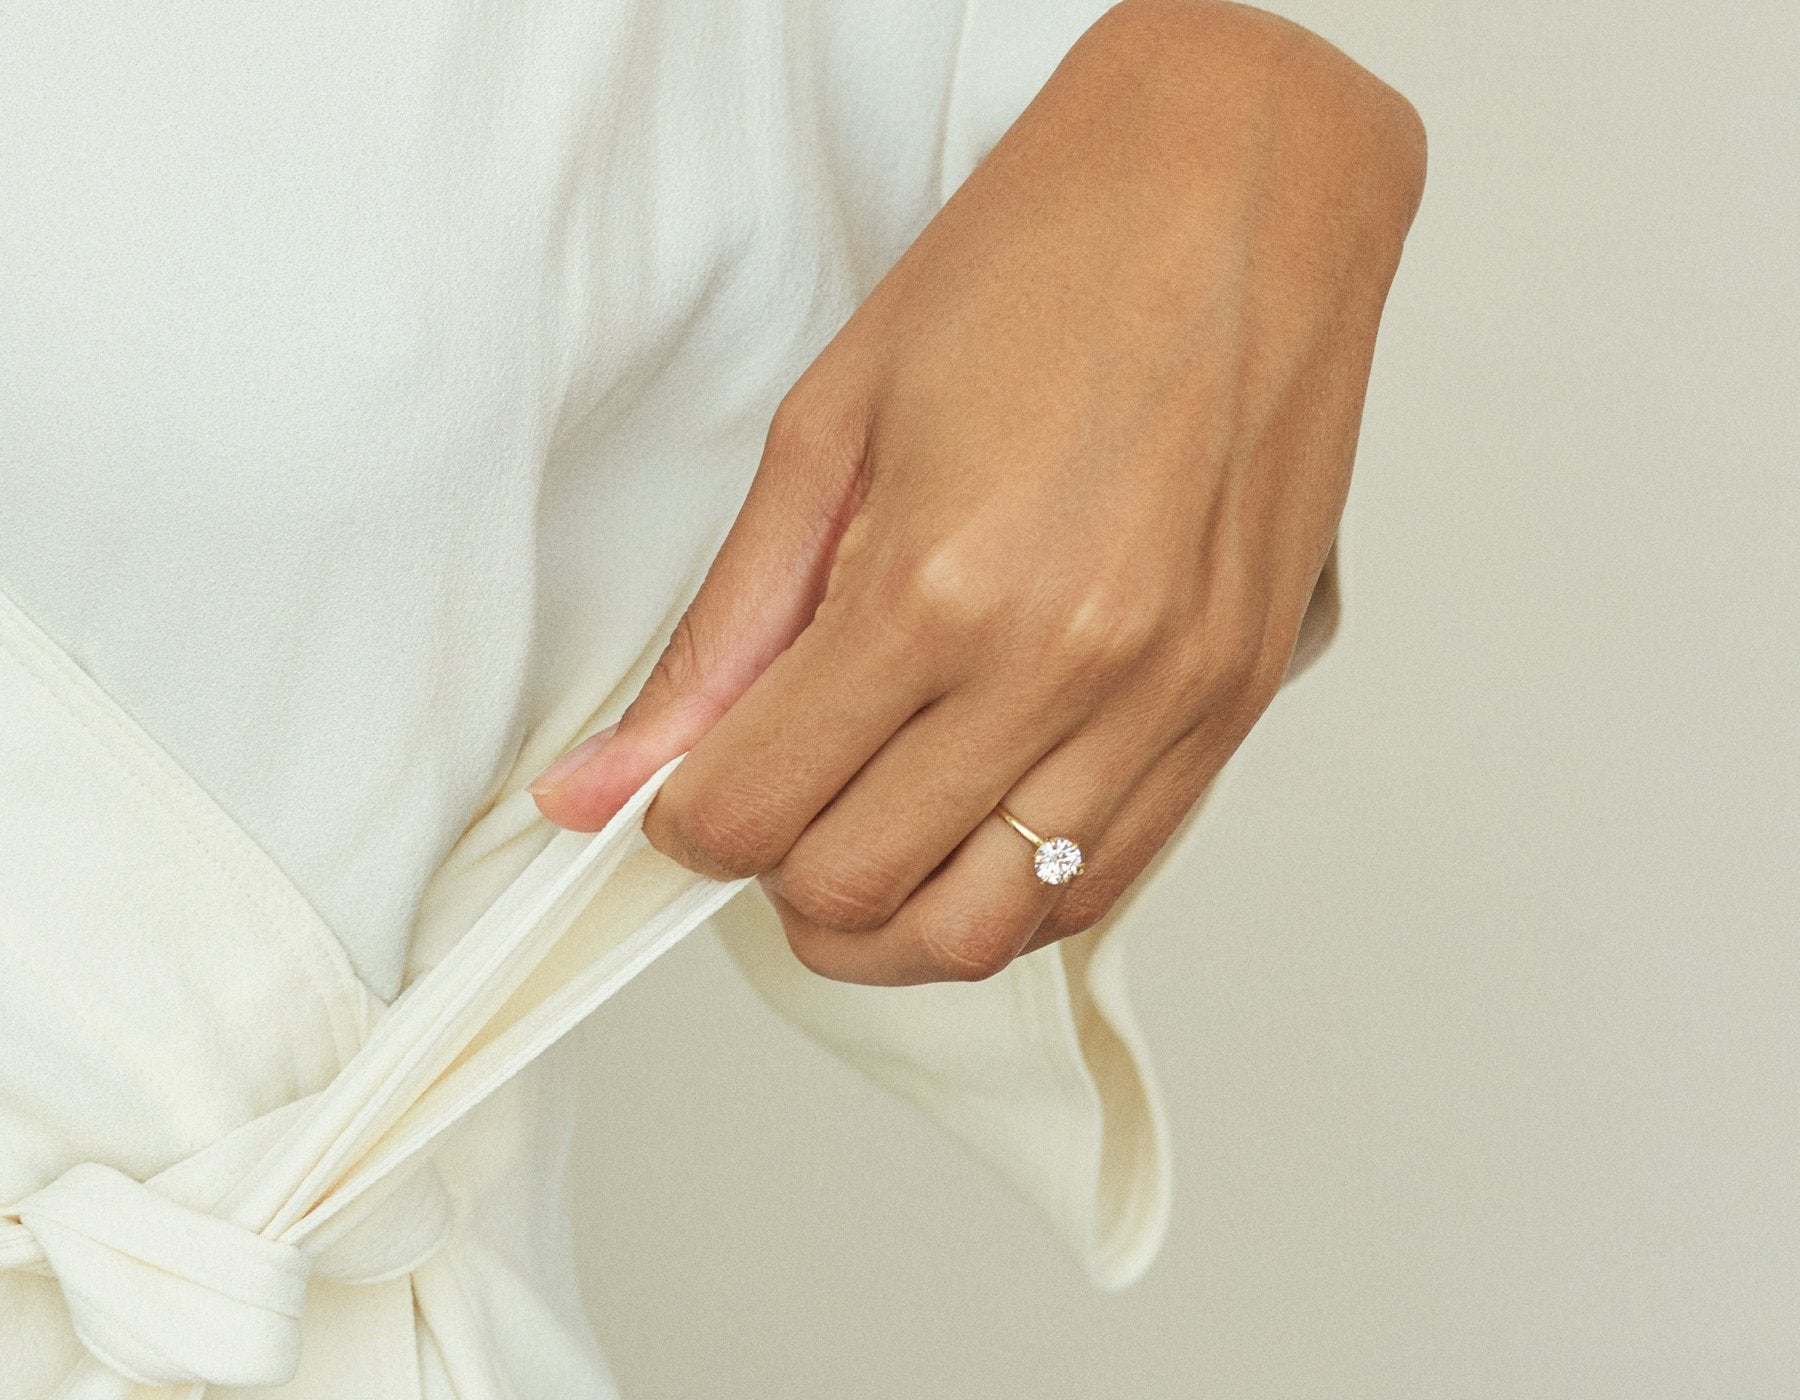 Model wearing Solitaire Diamond Engagement Ring Vrai & Oro Modern minimalist Sustainable diamond foundry